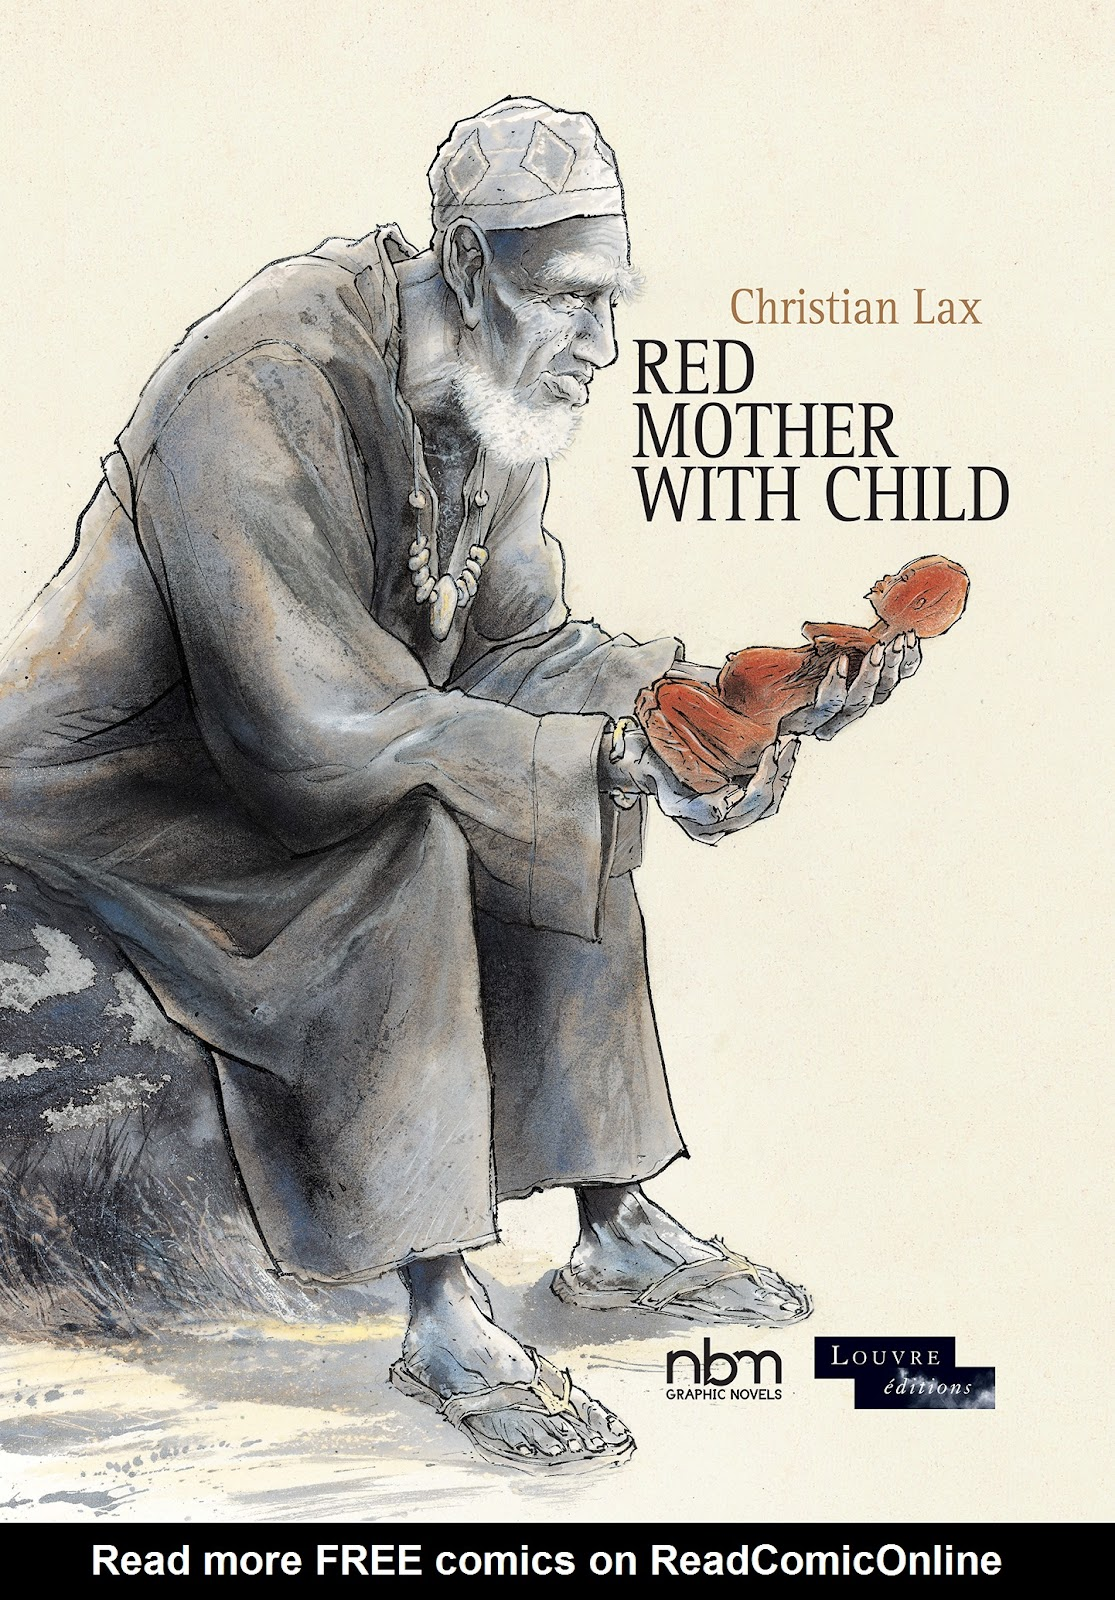 Read online The Red Mother with Child comic -  Issue # TPB - 1